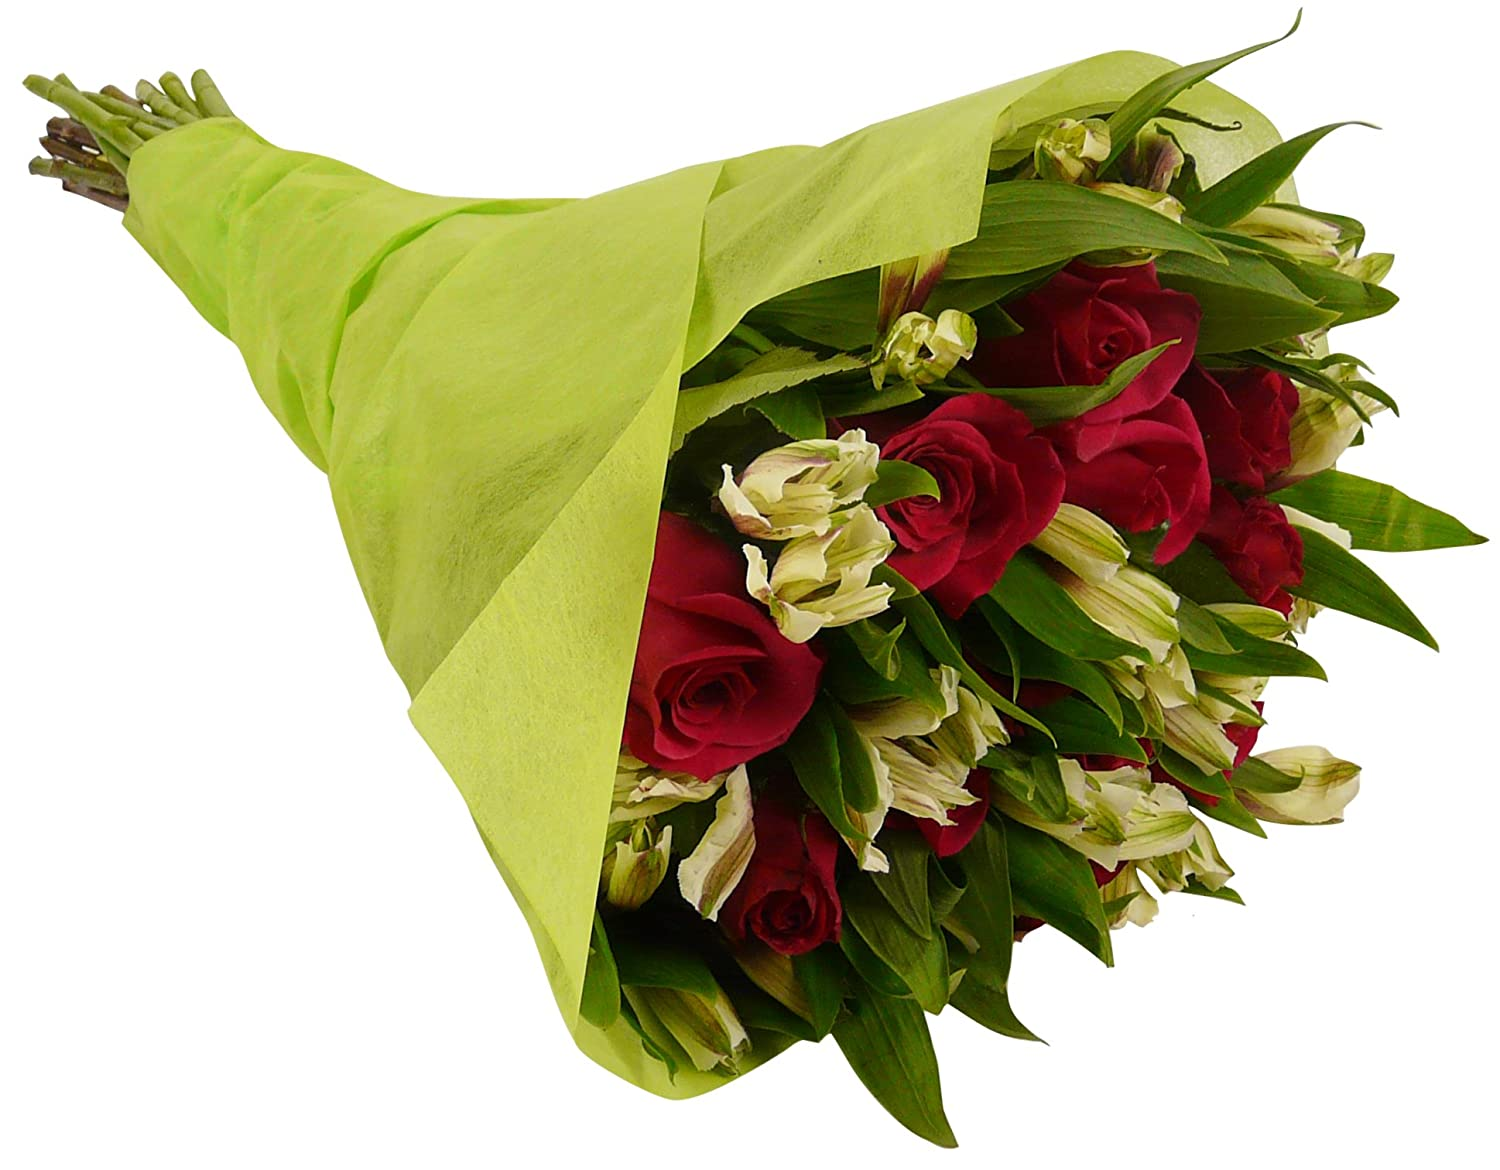 Amazon benchmark bouquets signature roses and alstroemeria amazon benchmark bouquets signature roses and alstroemeria with vase fresh cut flowers fresh cut format rose flowers grocery gourmet food izmirmasajfo